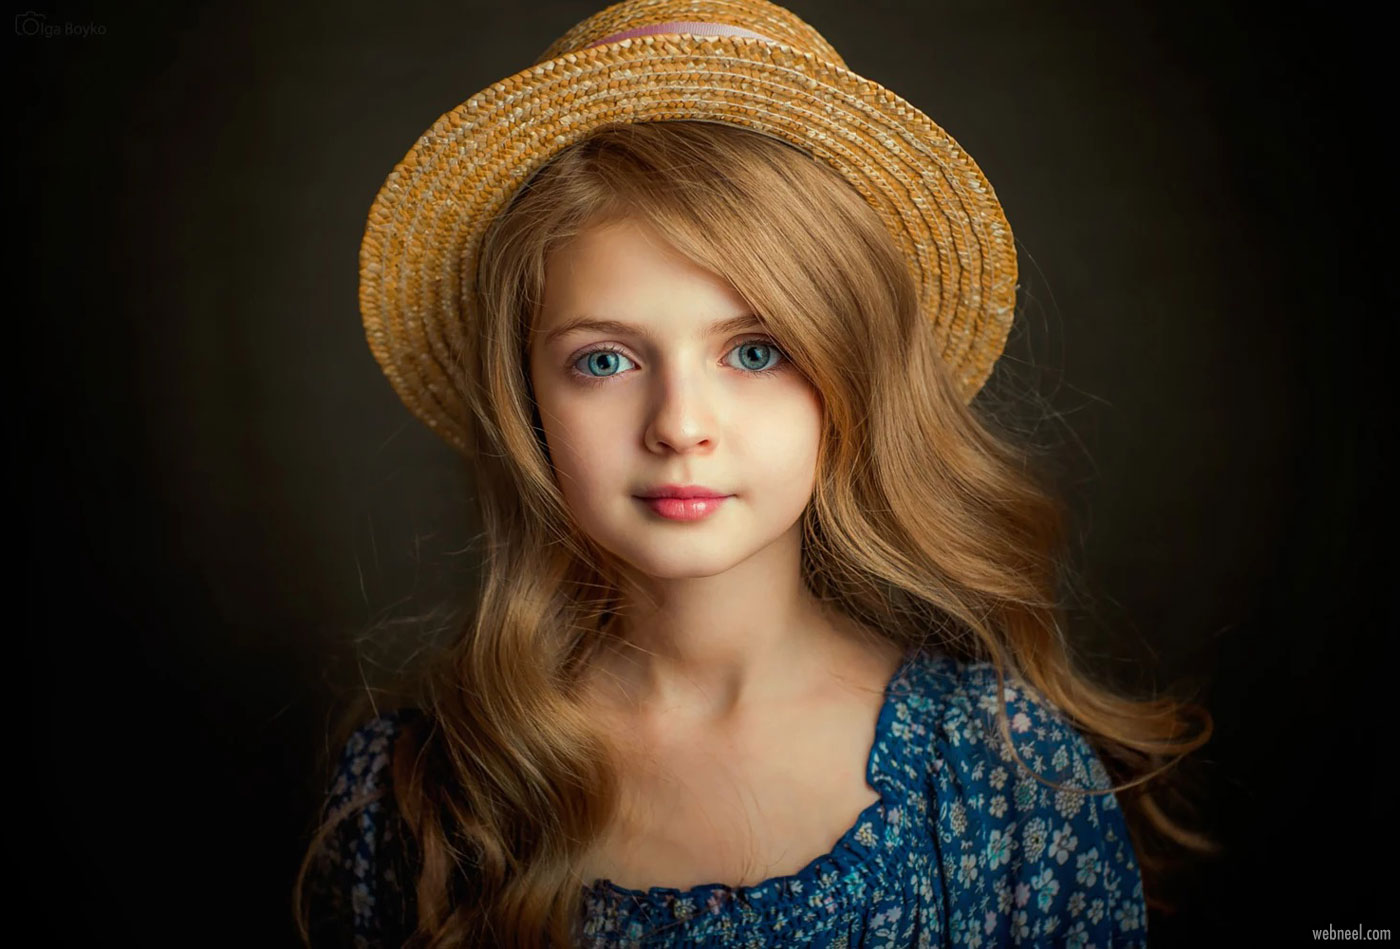 portrait photography kid by olgaboyko